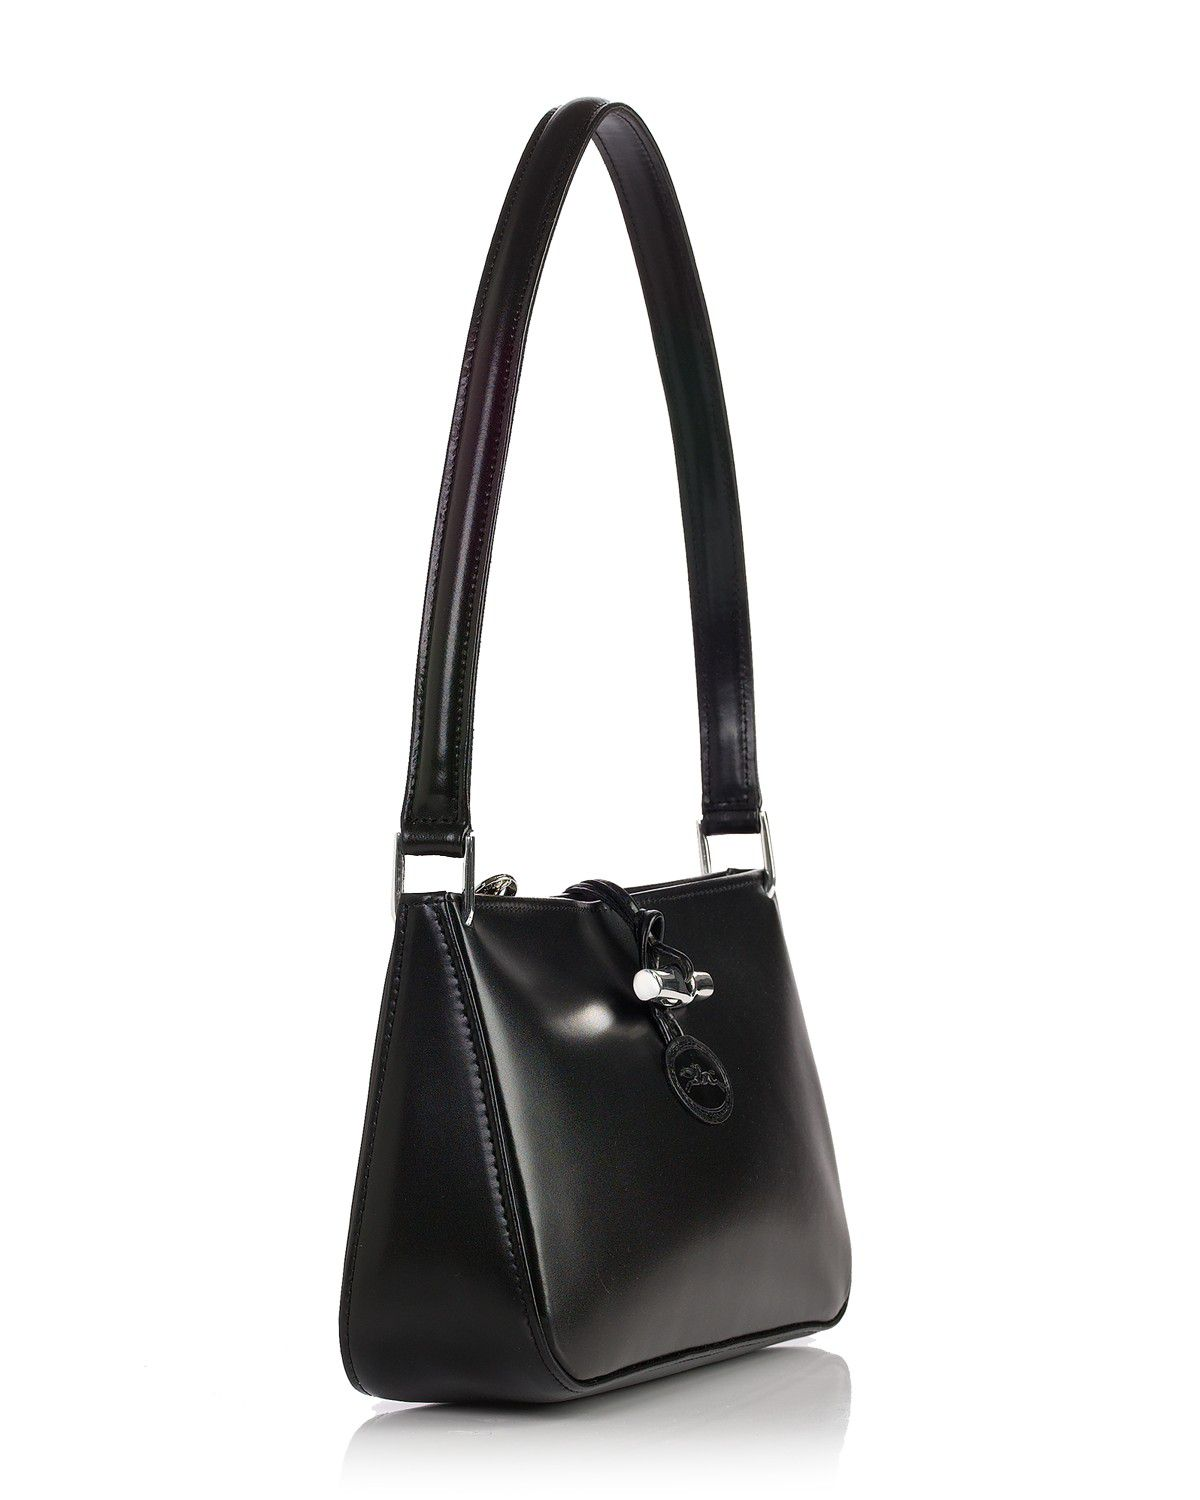 Gallery Previously Sold At Bloomingdale S Women Longchamp Roseau